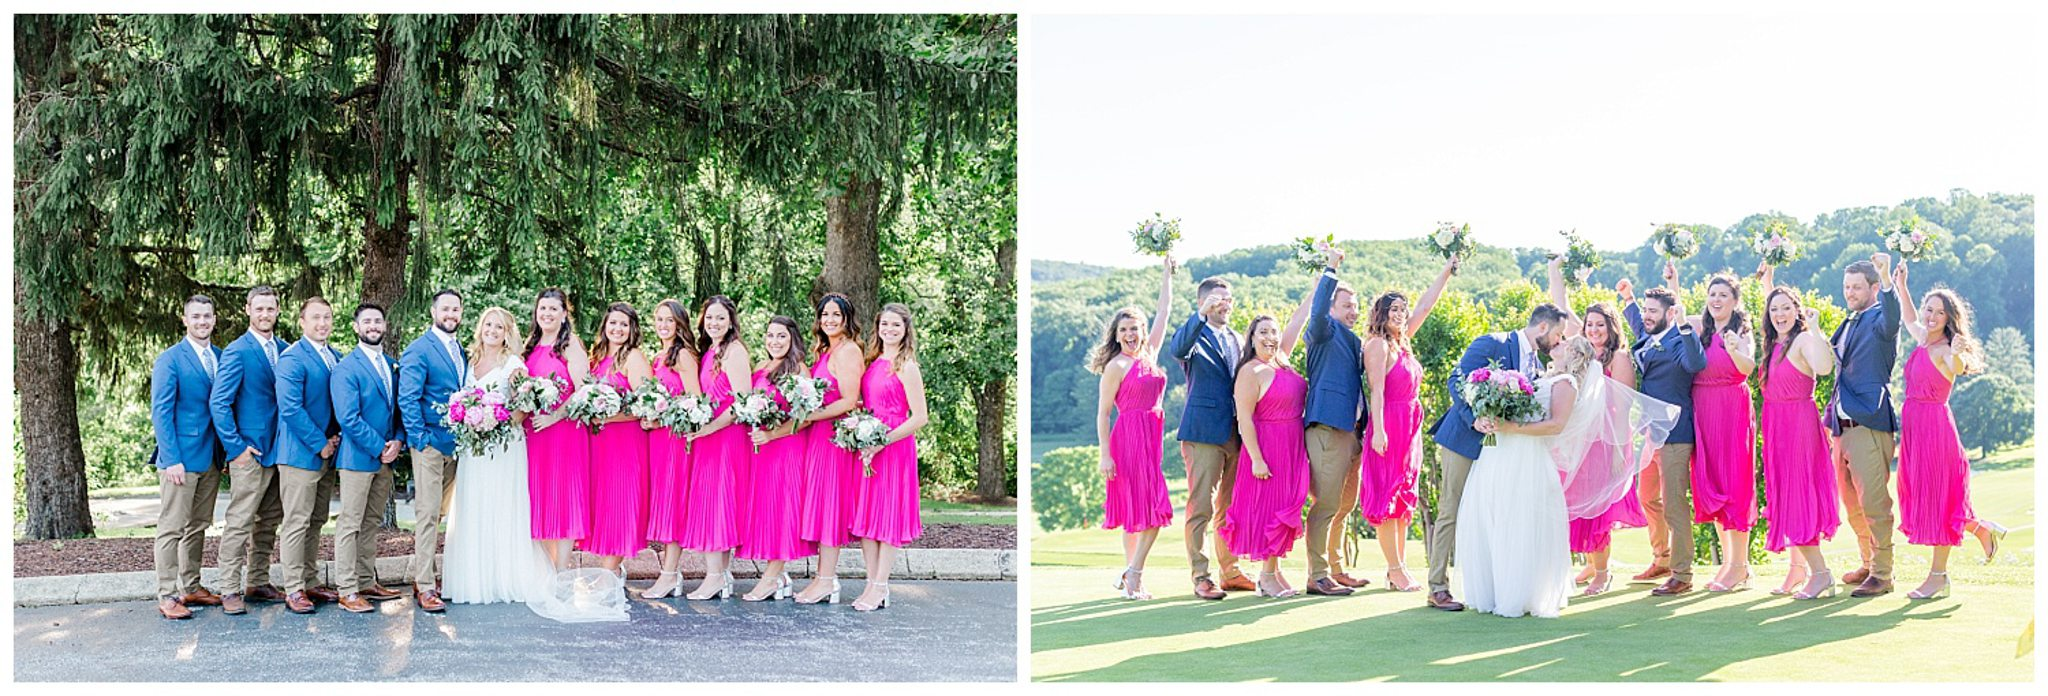 hunt valley country club,baltimore maryland,phoenix maryland,baltimore wedding,ballroom wedding venue, Samantha & Jon Wedding Hunt Valley Country Club- Phoenix, MD 6.14.19, Fine Art Wedding Photographer Baltimore MD, Fine Art Wedding Photographer Baltimore MD